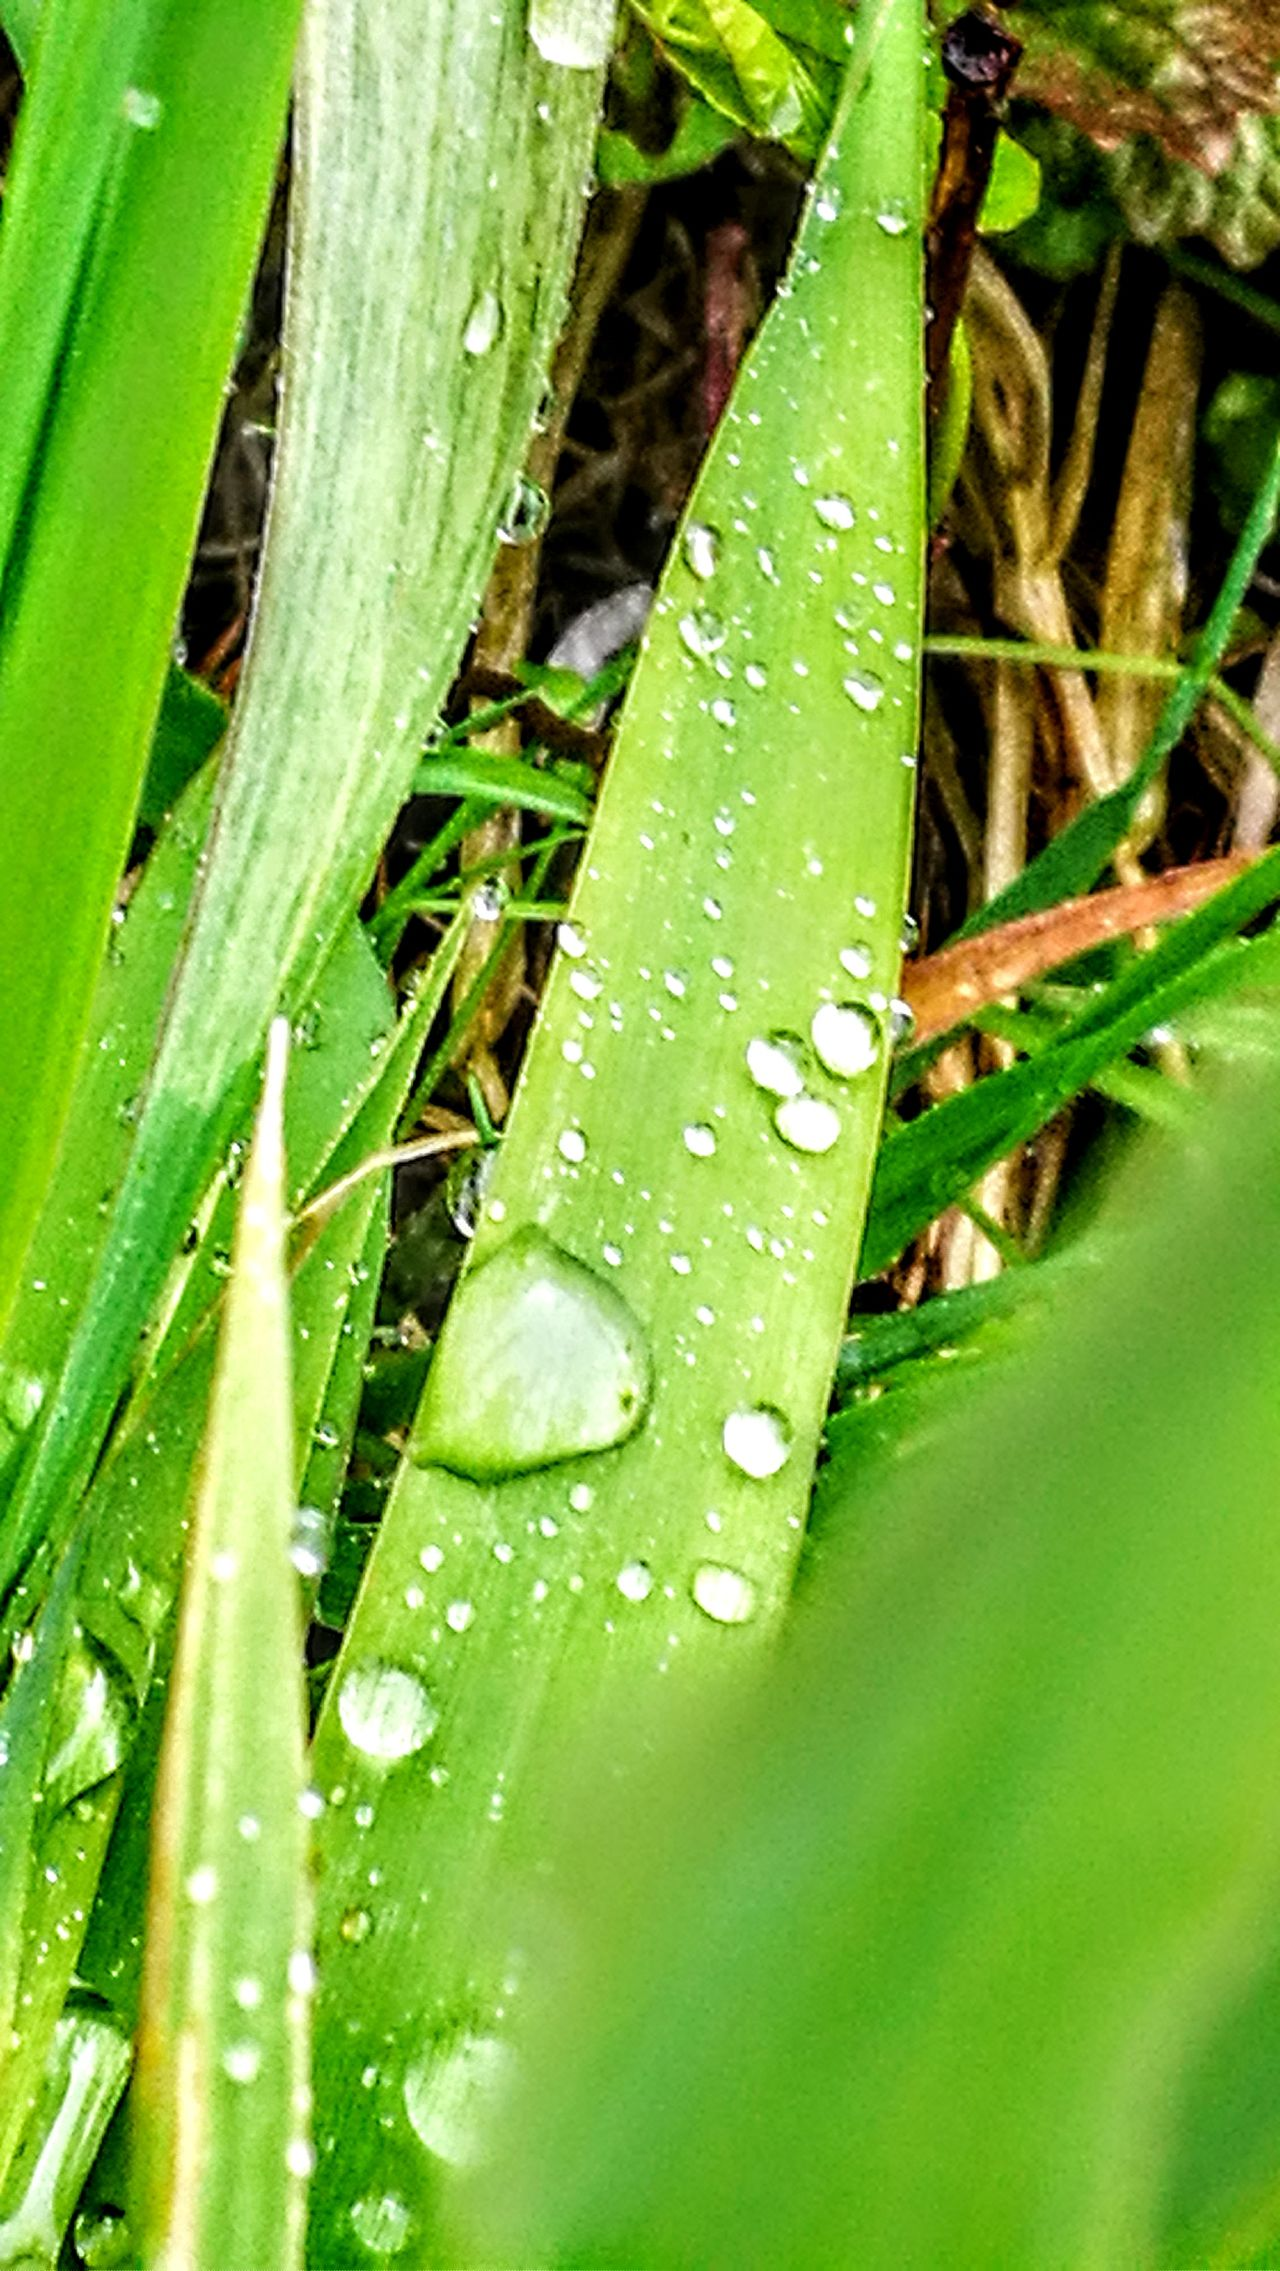 After the big rain... Green Color Nature Growth Leaf Close-up Plant Day Outdoors No People Beauty In Nature Water Freshness RainDrop Beauty In Nature GetbetterwithAlex Wendland Originalpicture